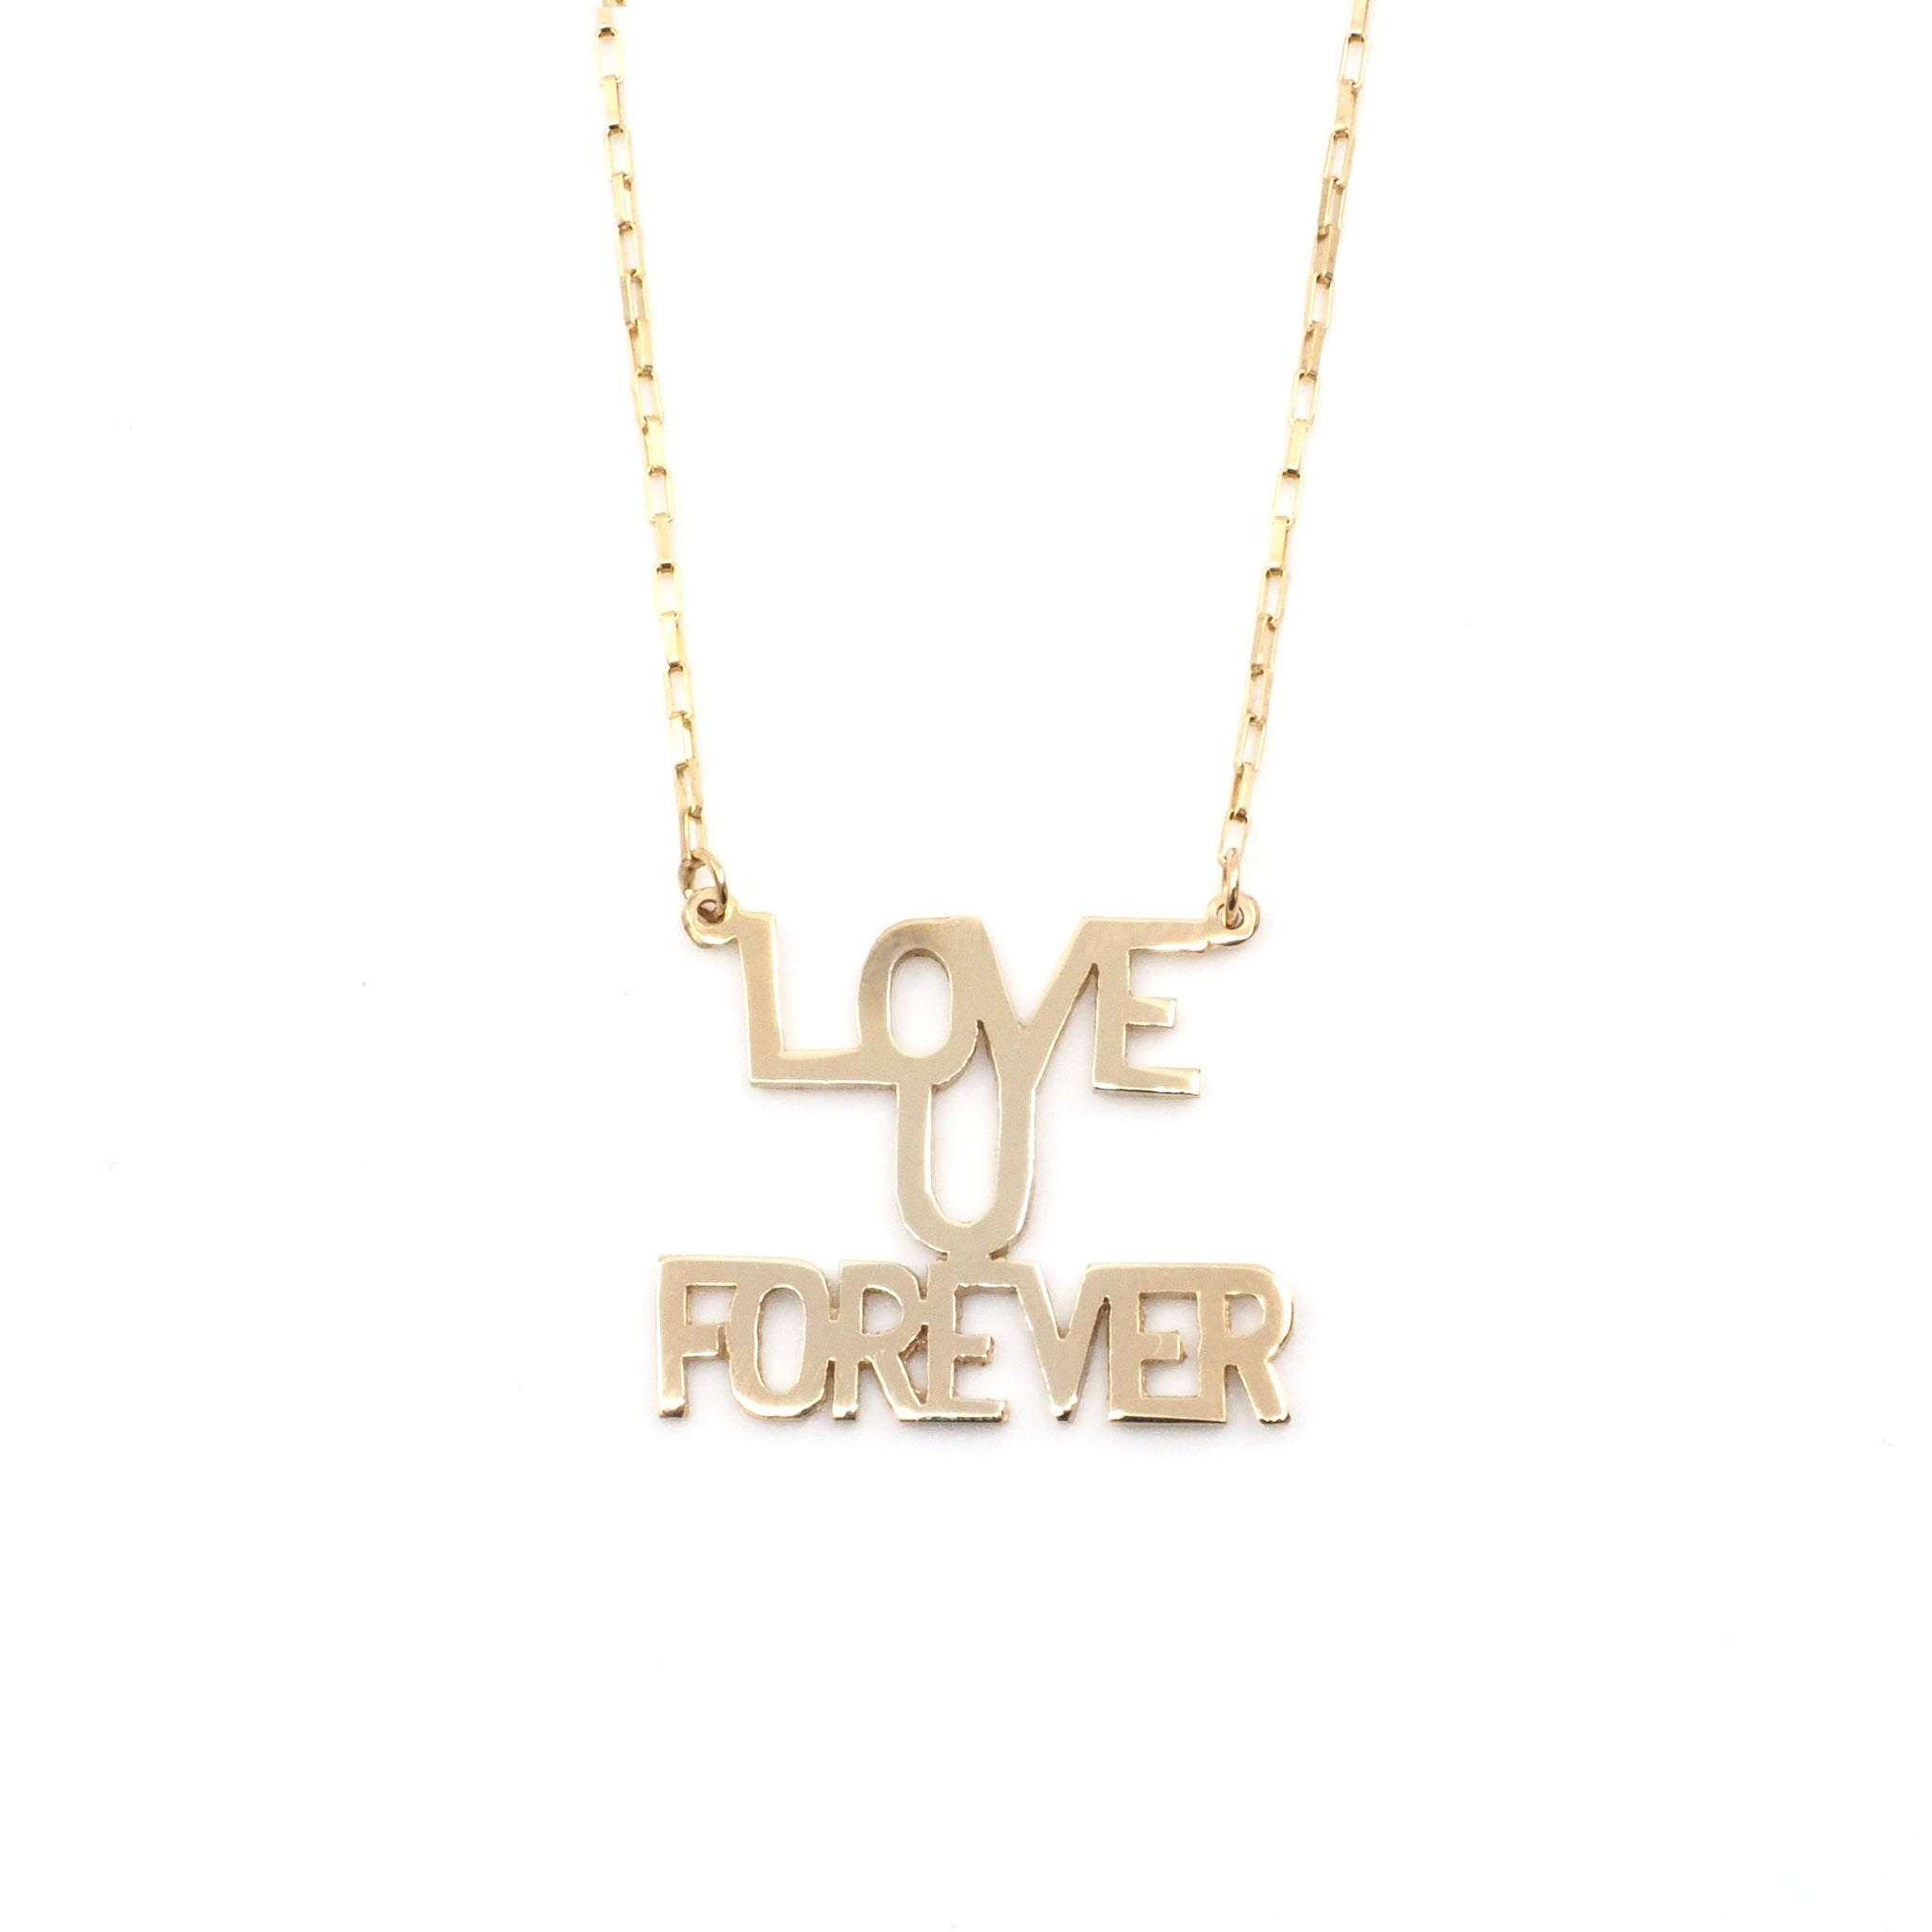 Love You Forever Sunrise Necklace in 10K & 14K Gold